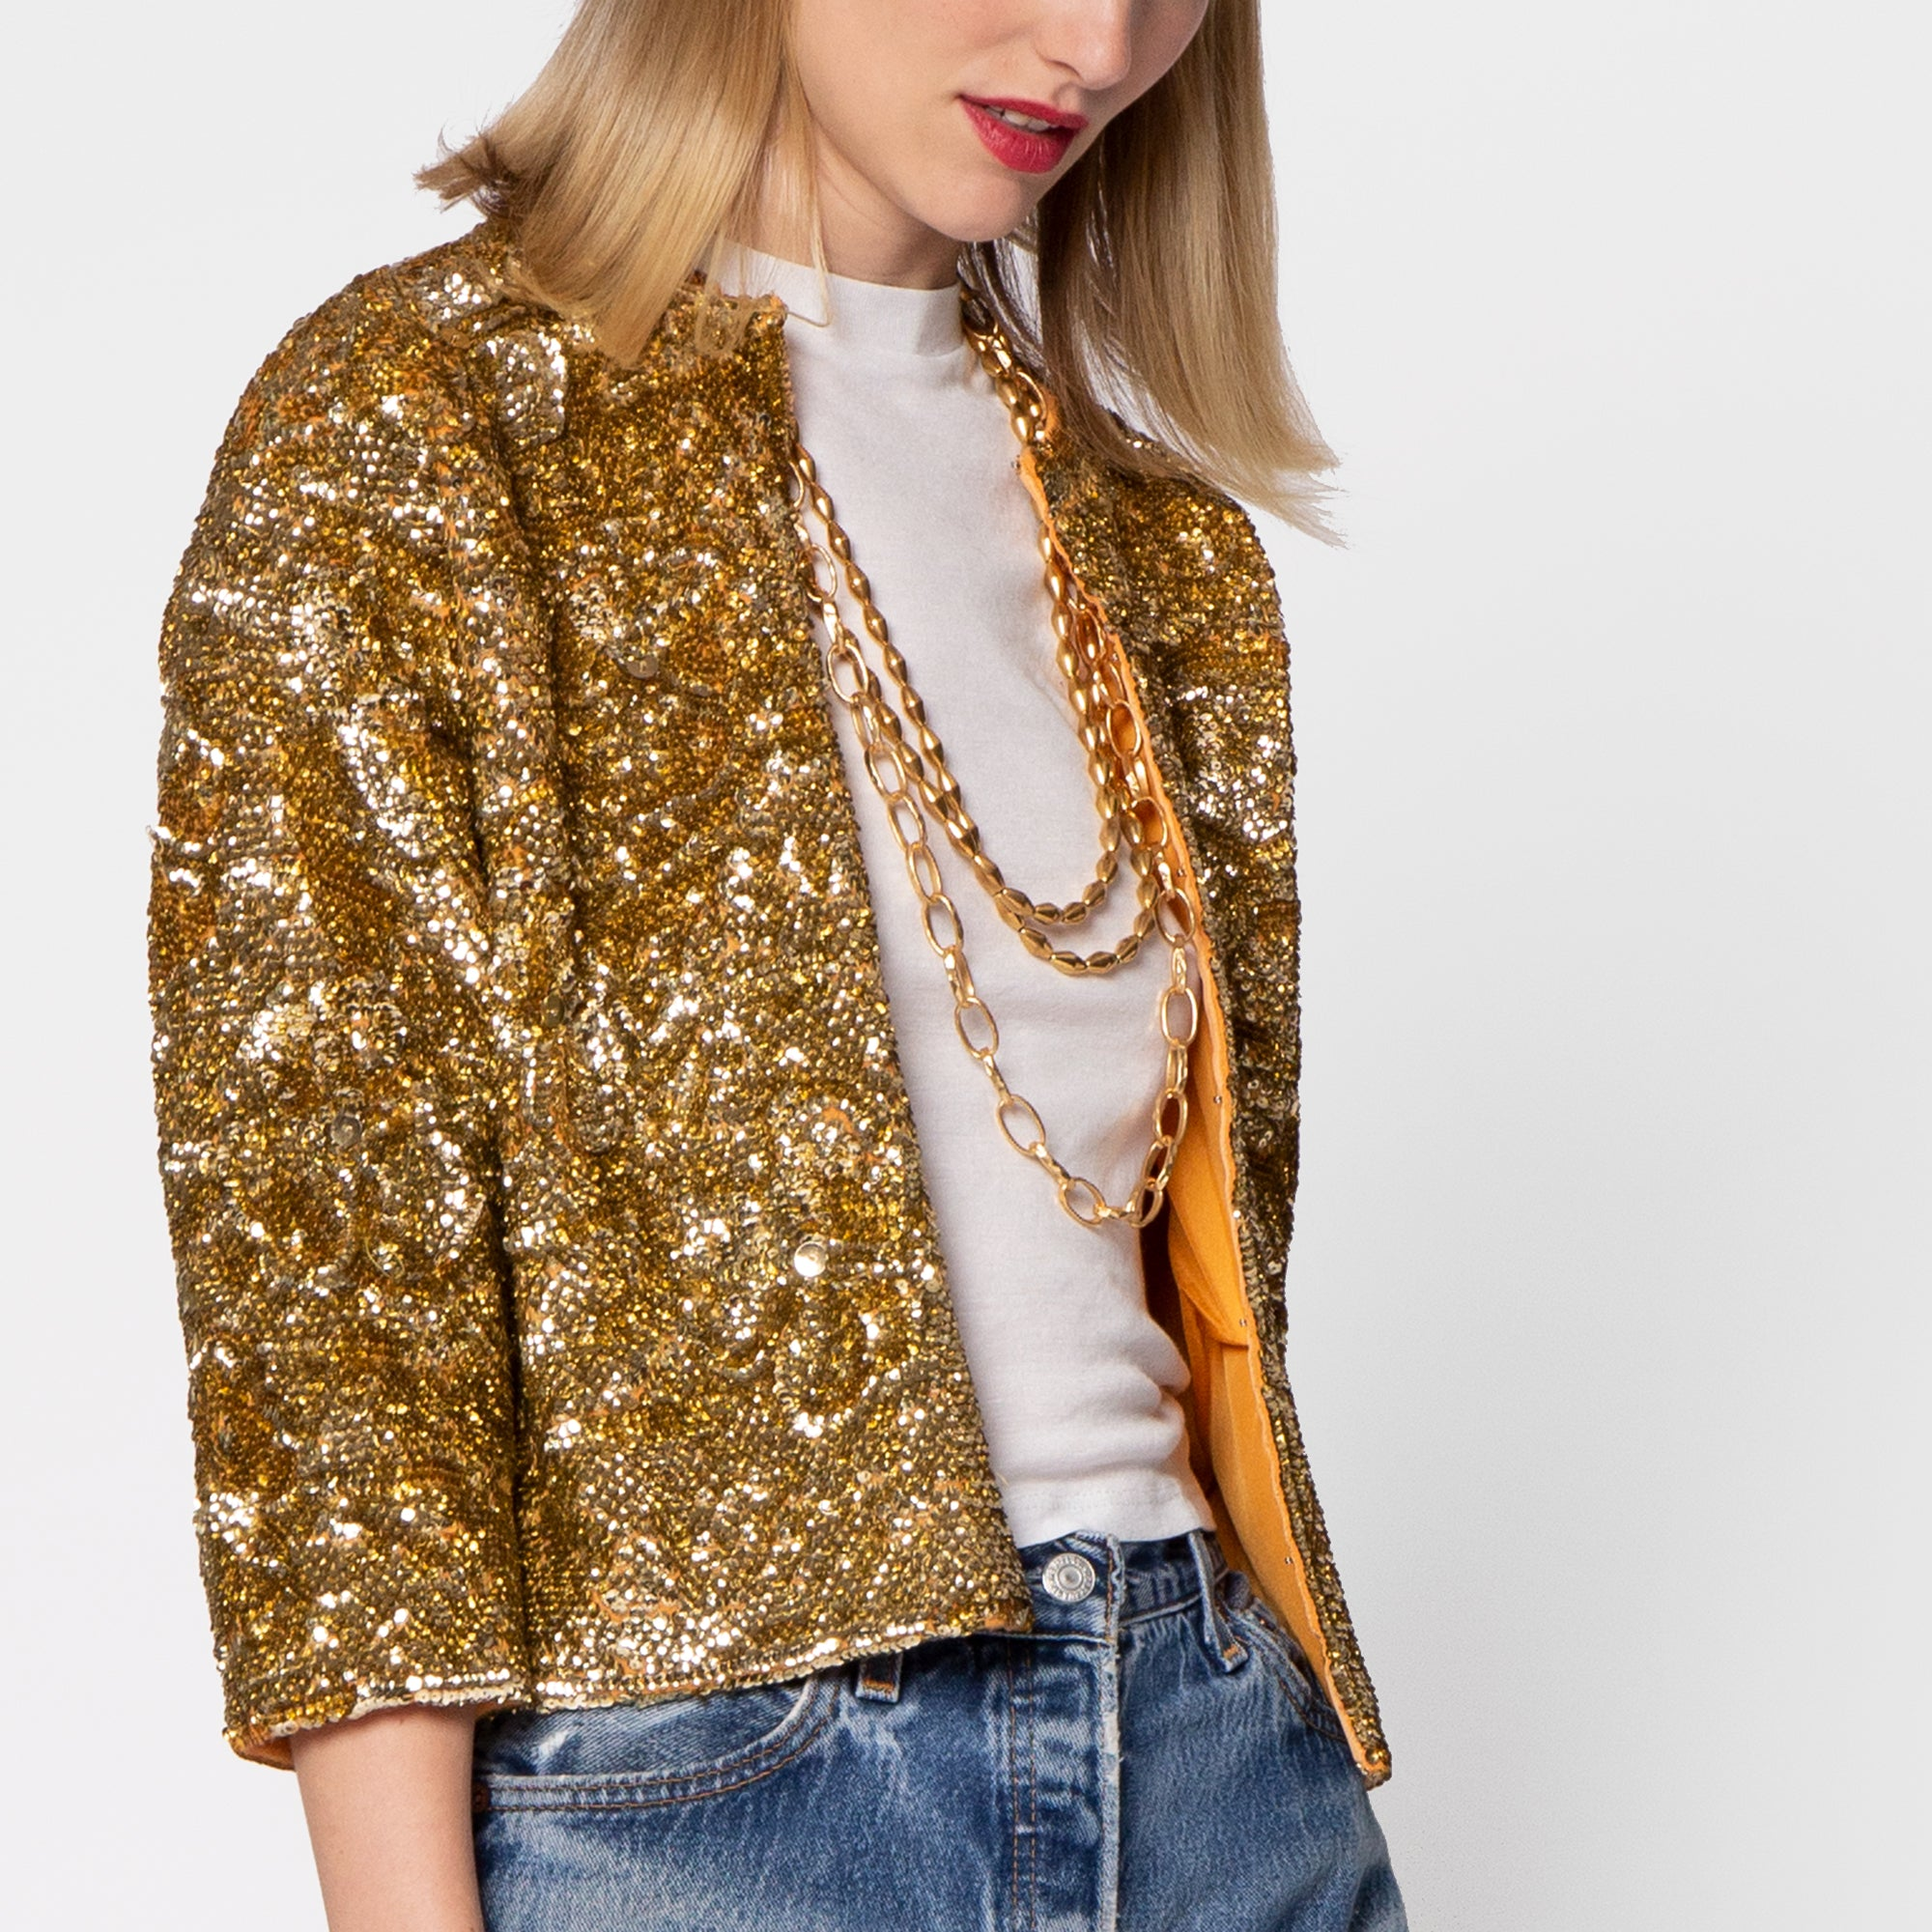 Sequin Flower Jacket Gold - Frances Valentine